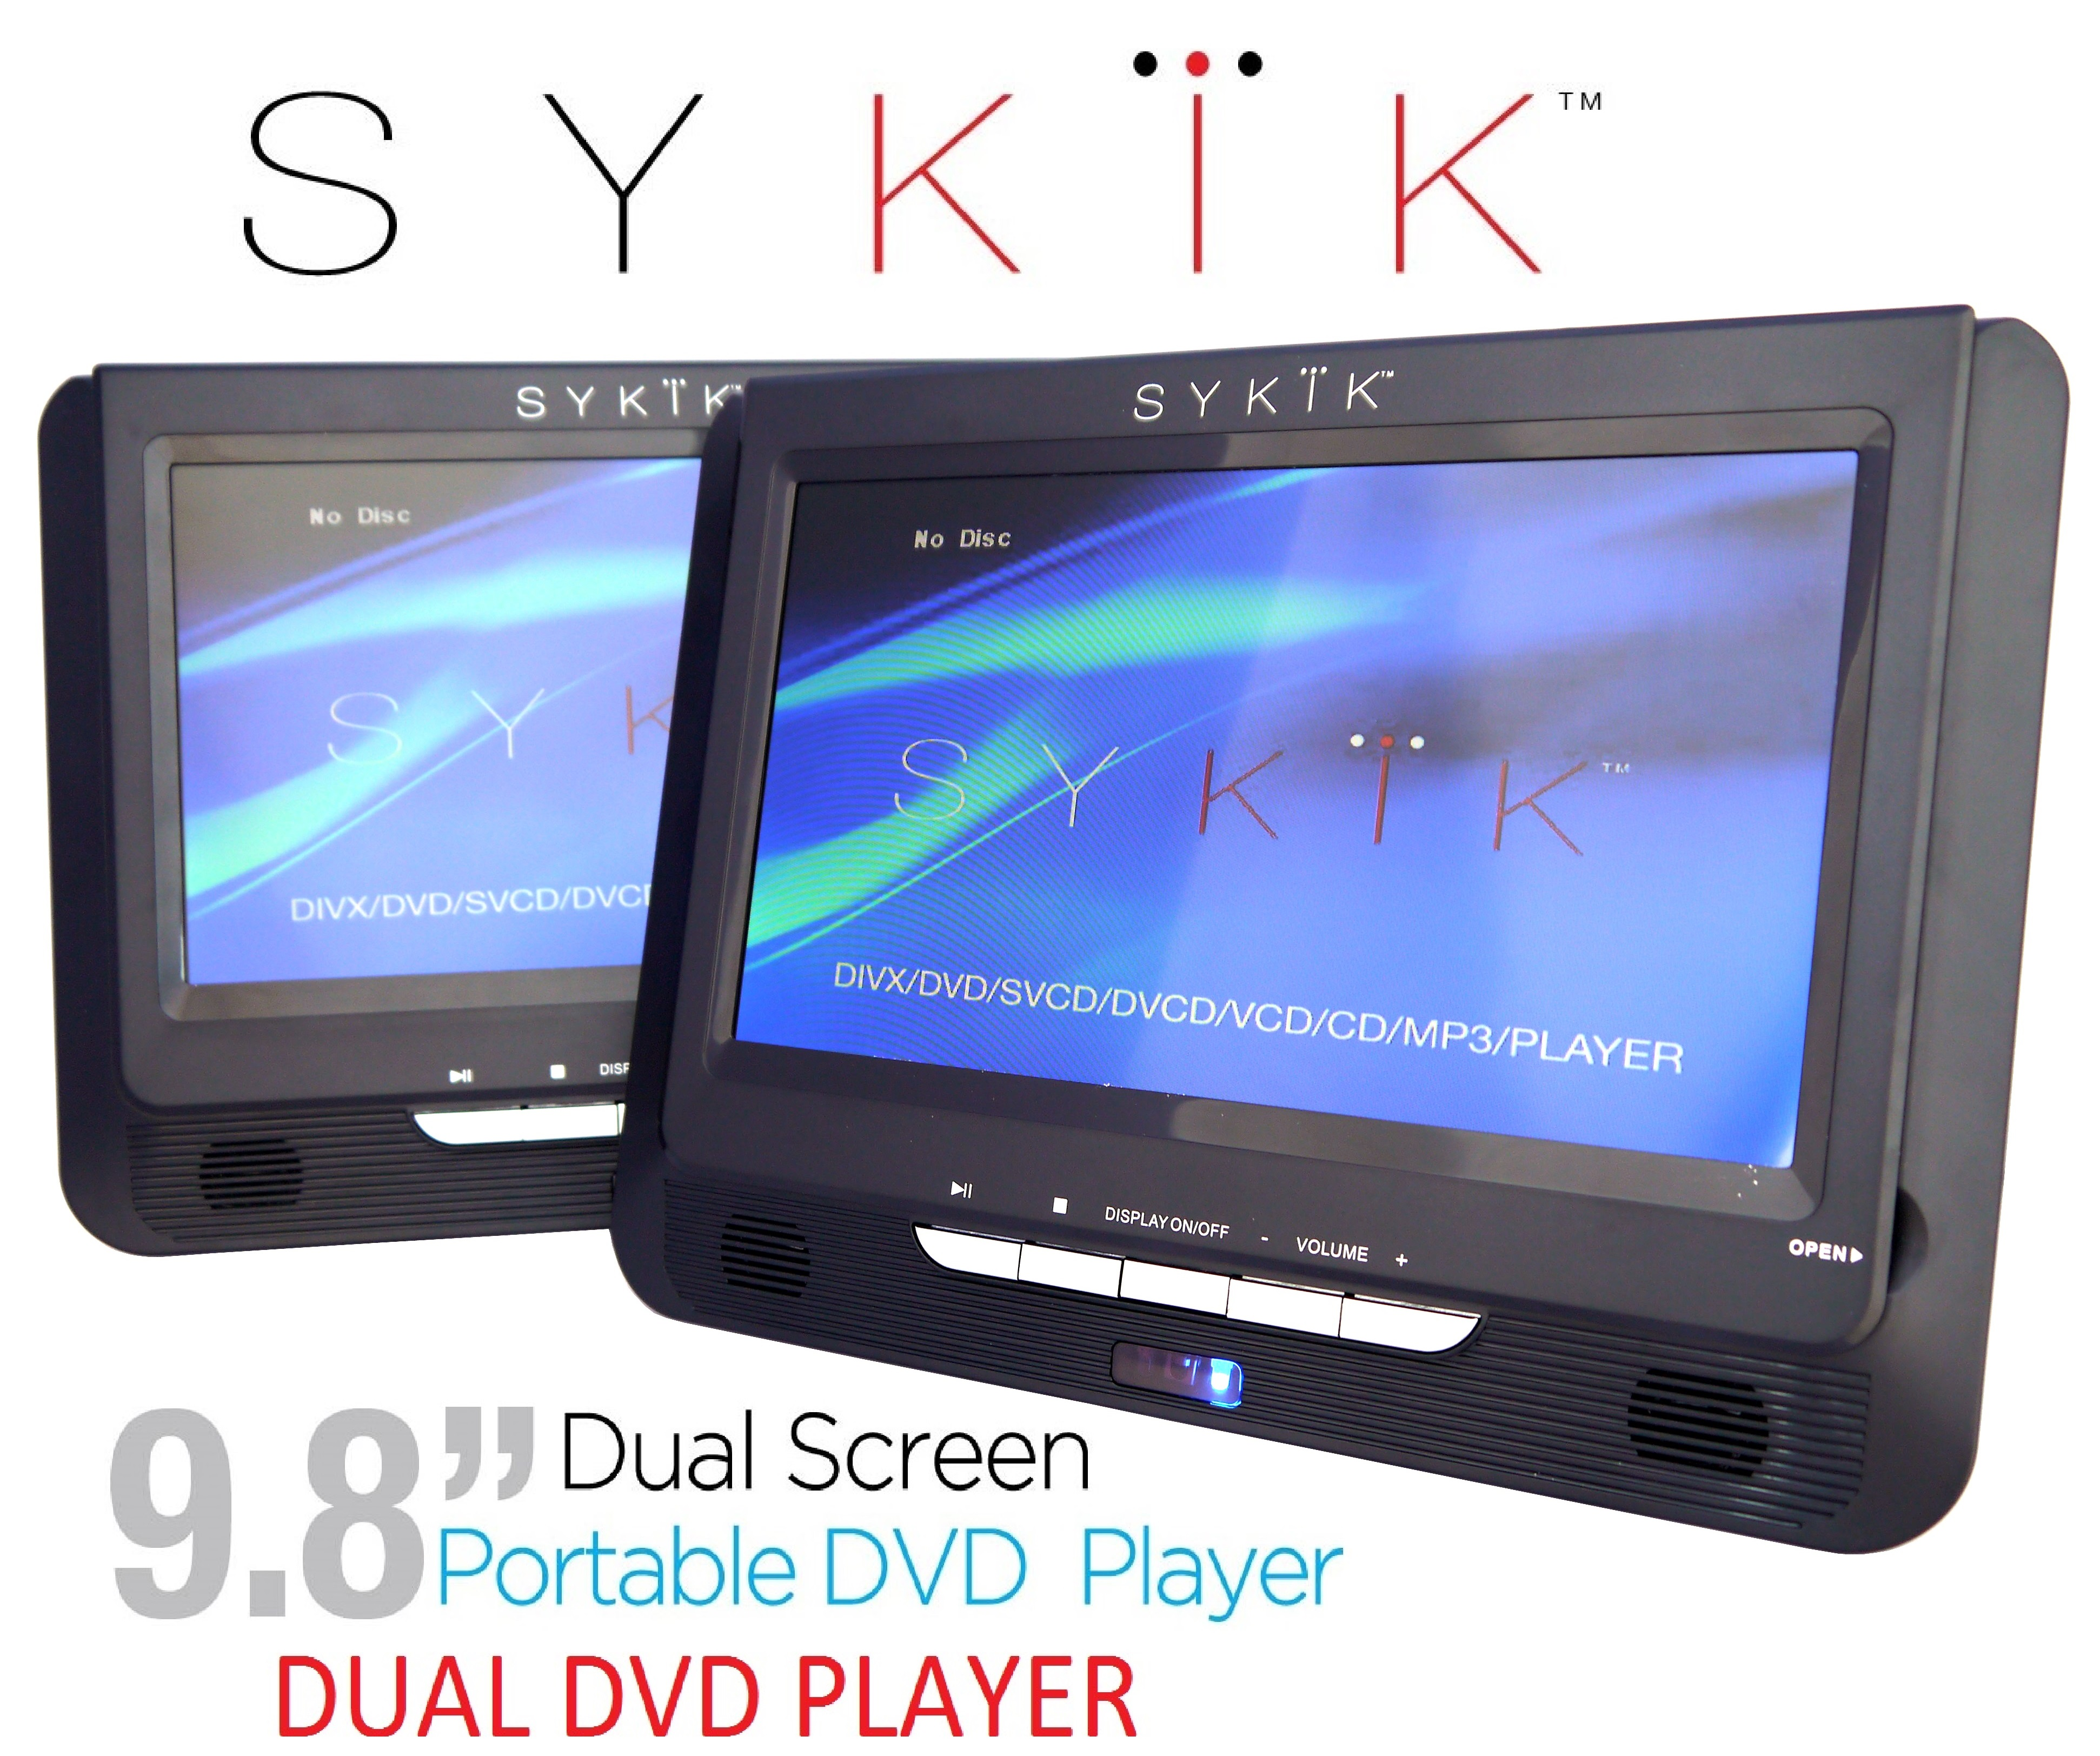 "Sykik 9.8"" Dual screen, dual DVD player. Both W/ built-in rechar"